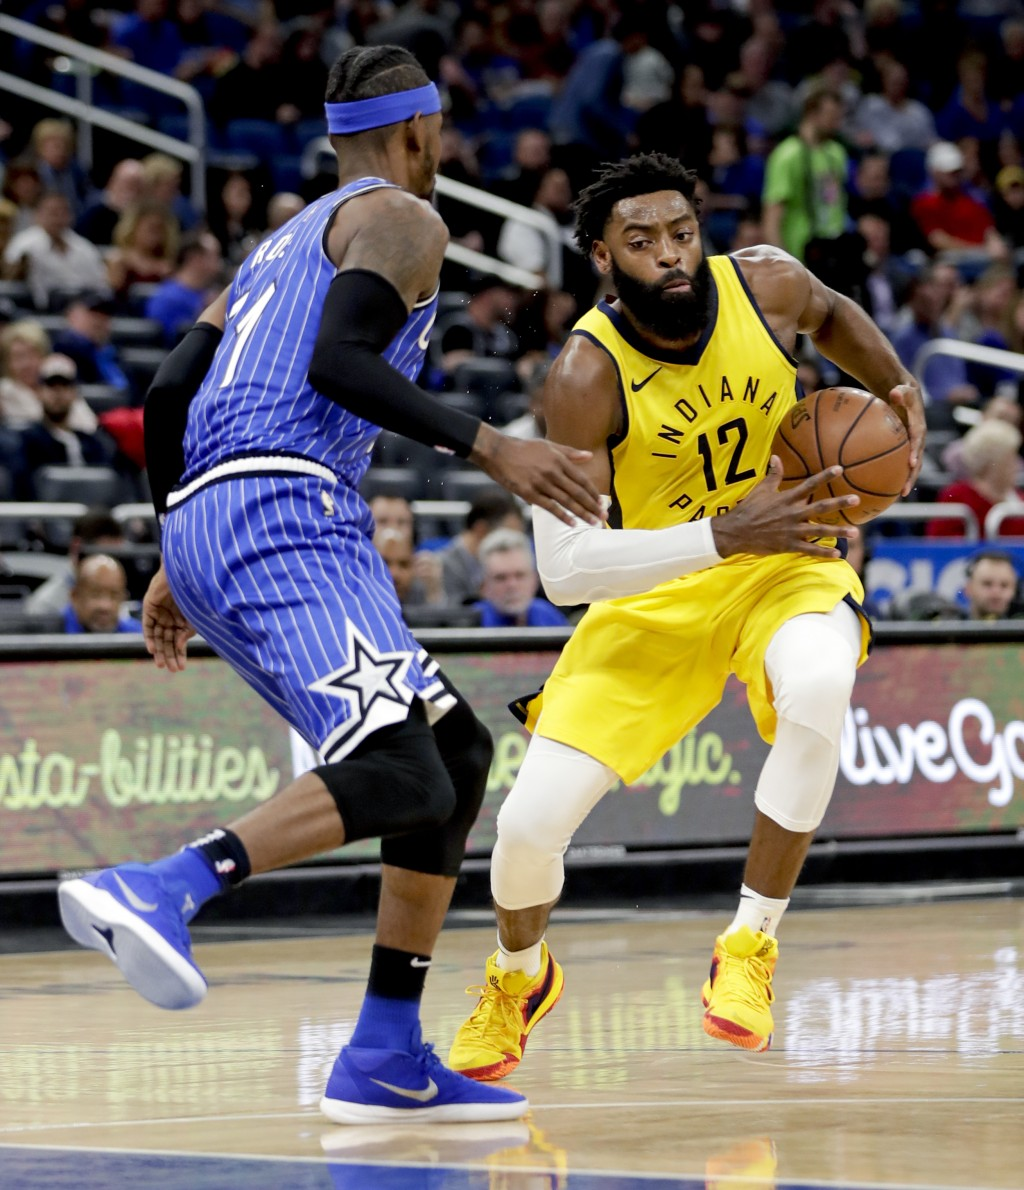 Indiana Pacers' Tyreke Evans (12) makes a move to get around Orlando Magic's Terrence Ross, left, during the first half of an NBA basketball game Frid